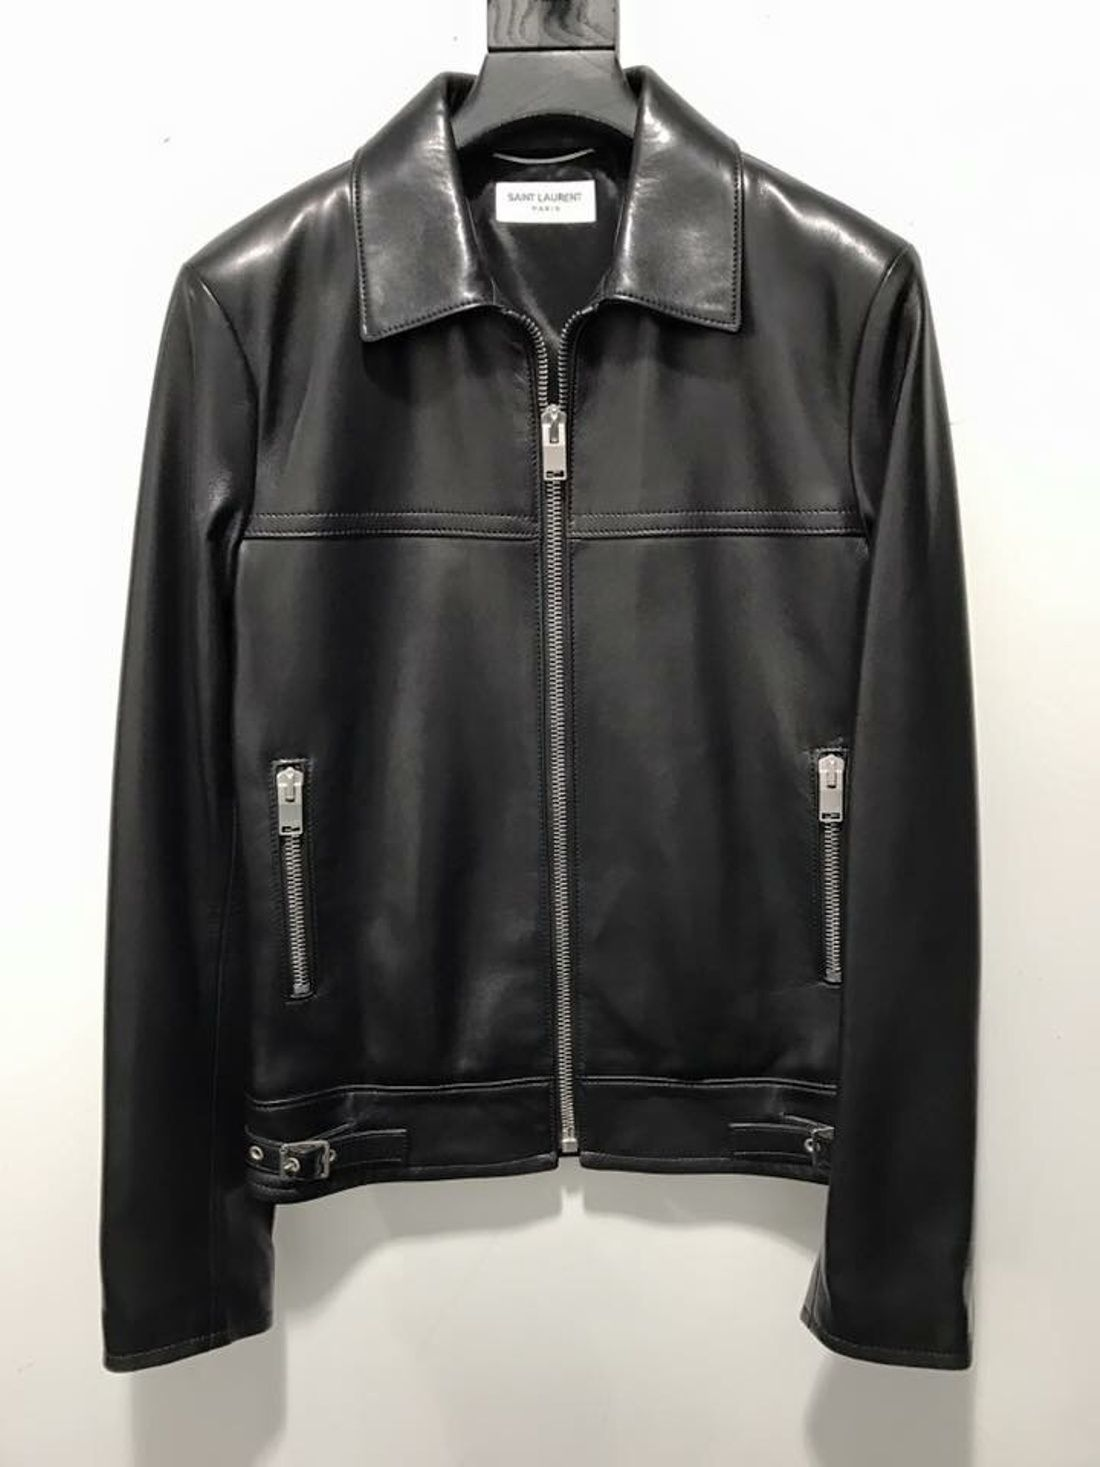 89c8bc4c9 Hedi Slimane × Saint Laurent Paris Classic Biker Leather Jacket Sz46 ...